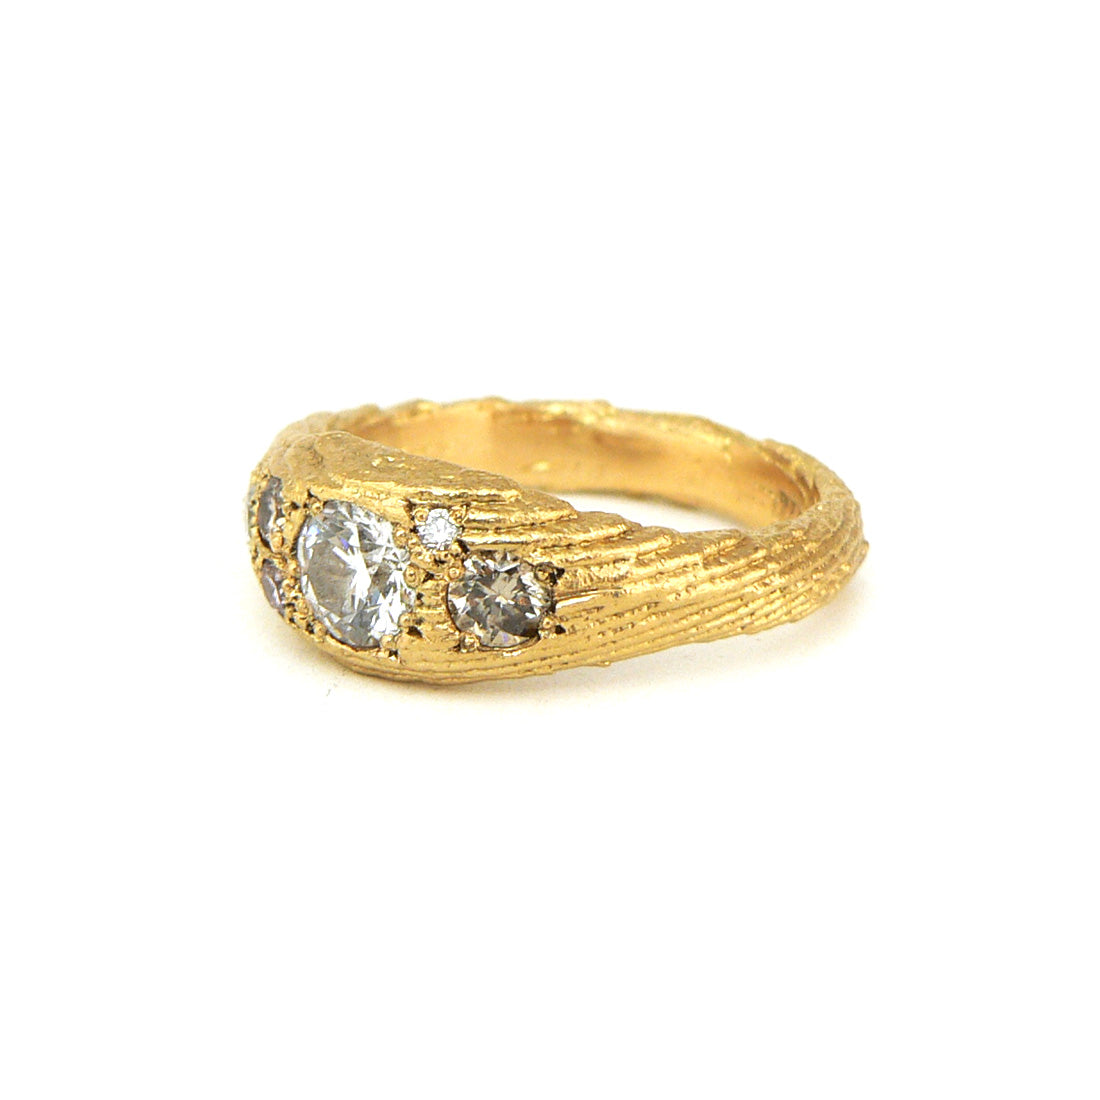 Golden Sands Ring